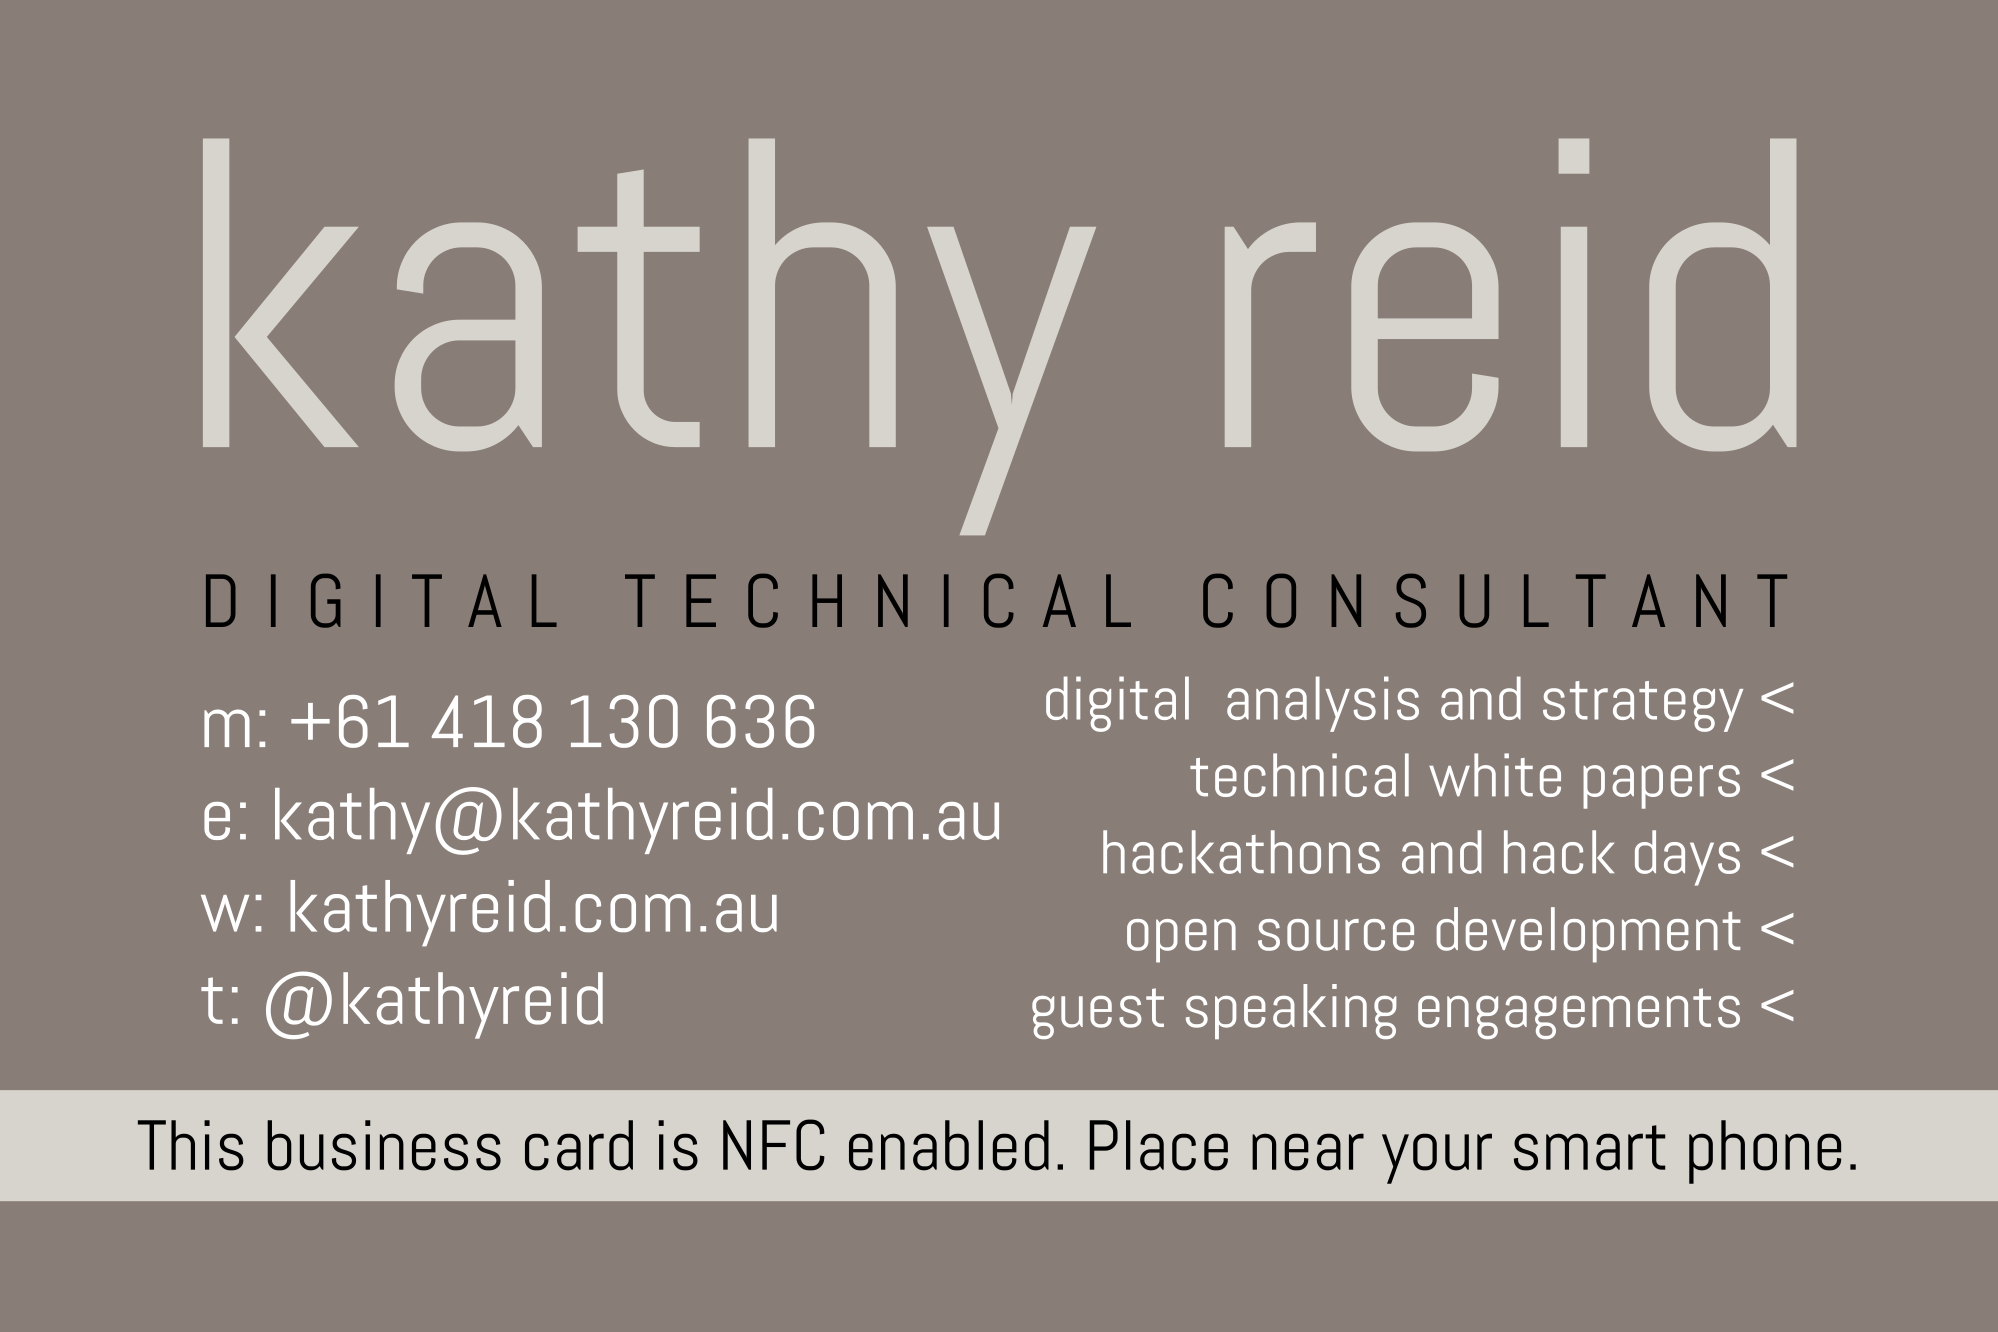 Nfc business cards a new way to connect kathy reid digital nfc business cards a new way to connect kathy reid digital technical consultancy colourmoves